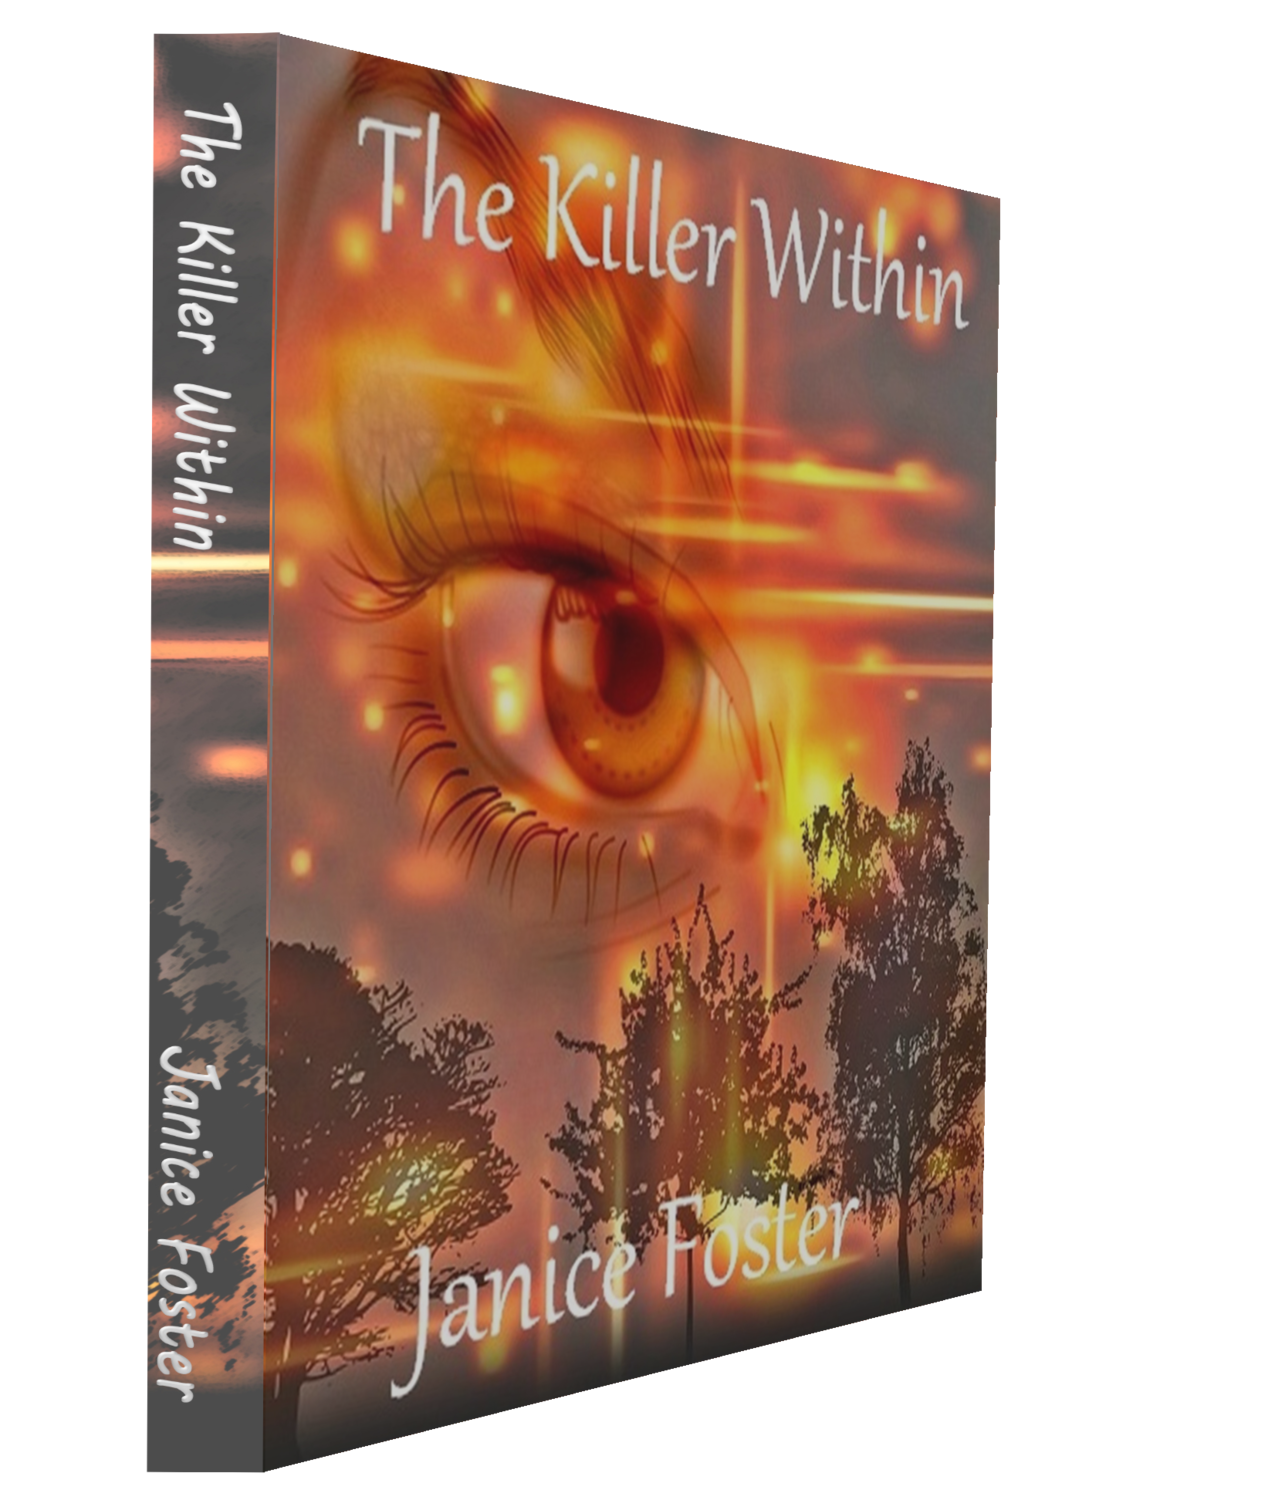 The Killer Within (The Killer Within Series # 1)